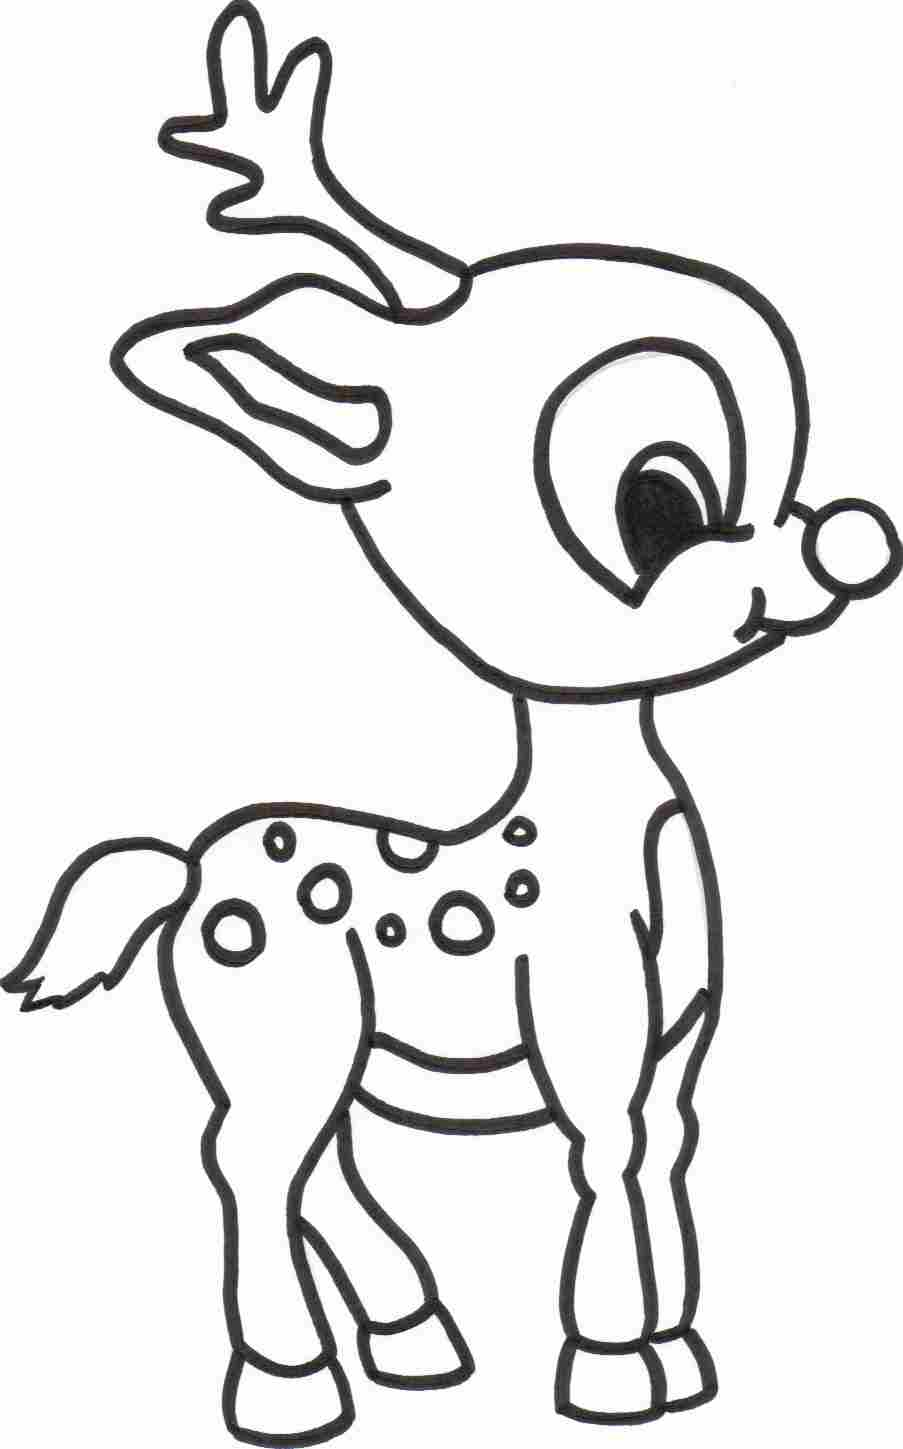 4 Images of Reindeer Printable Coloring Pages